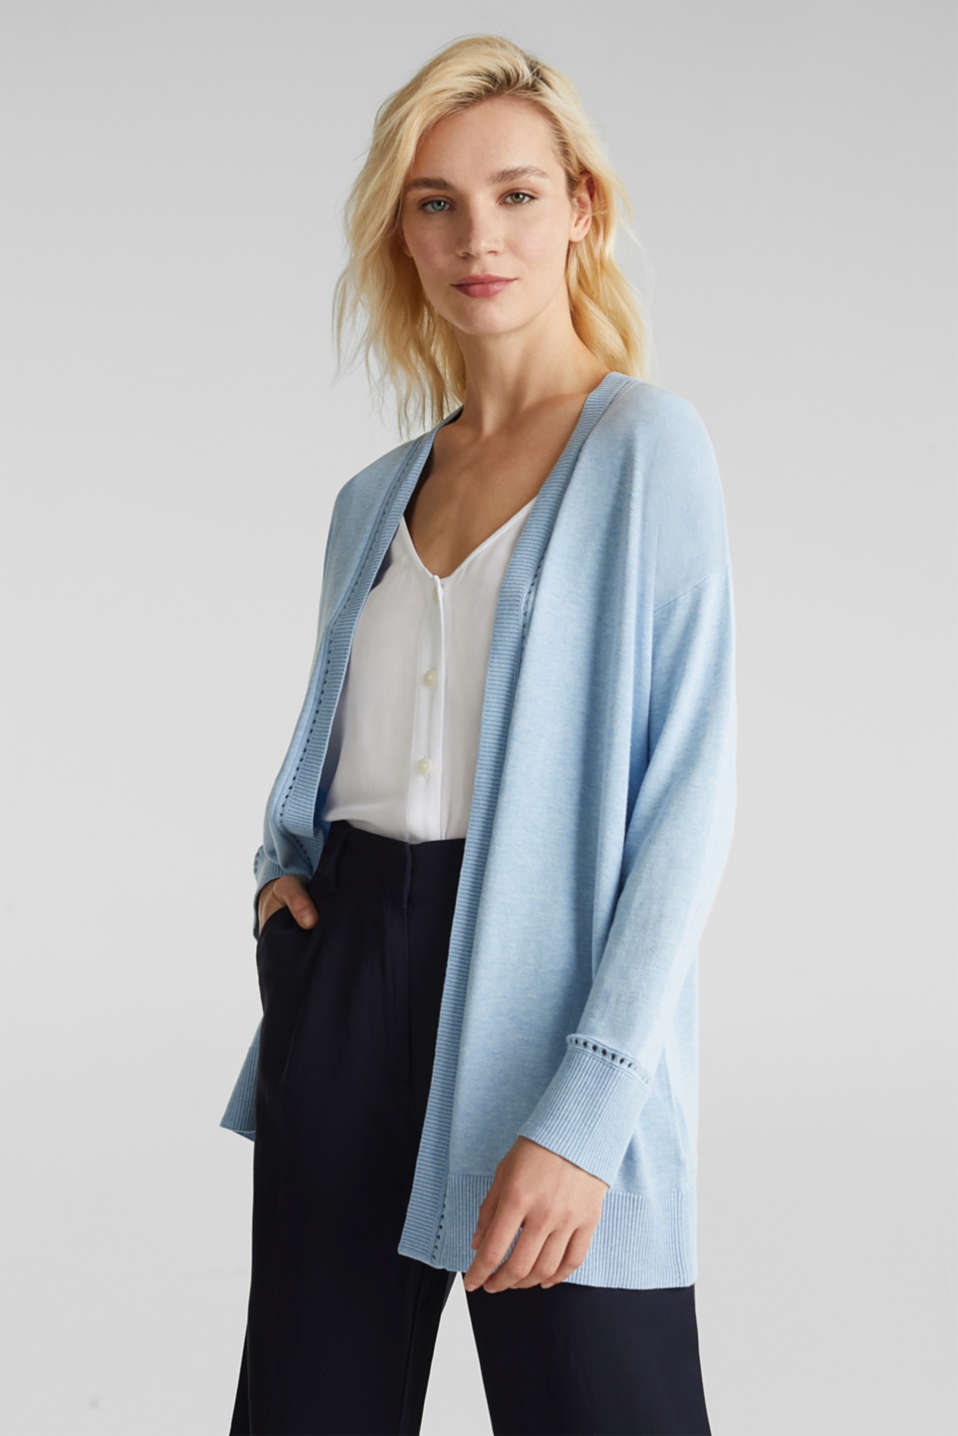 Cardigan with open-work pattern details, LIGHT BLUE, detail image number 0